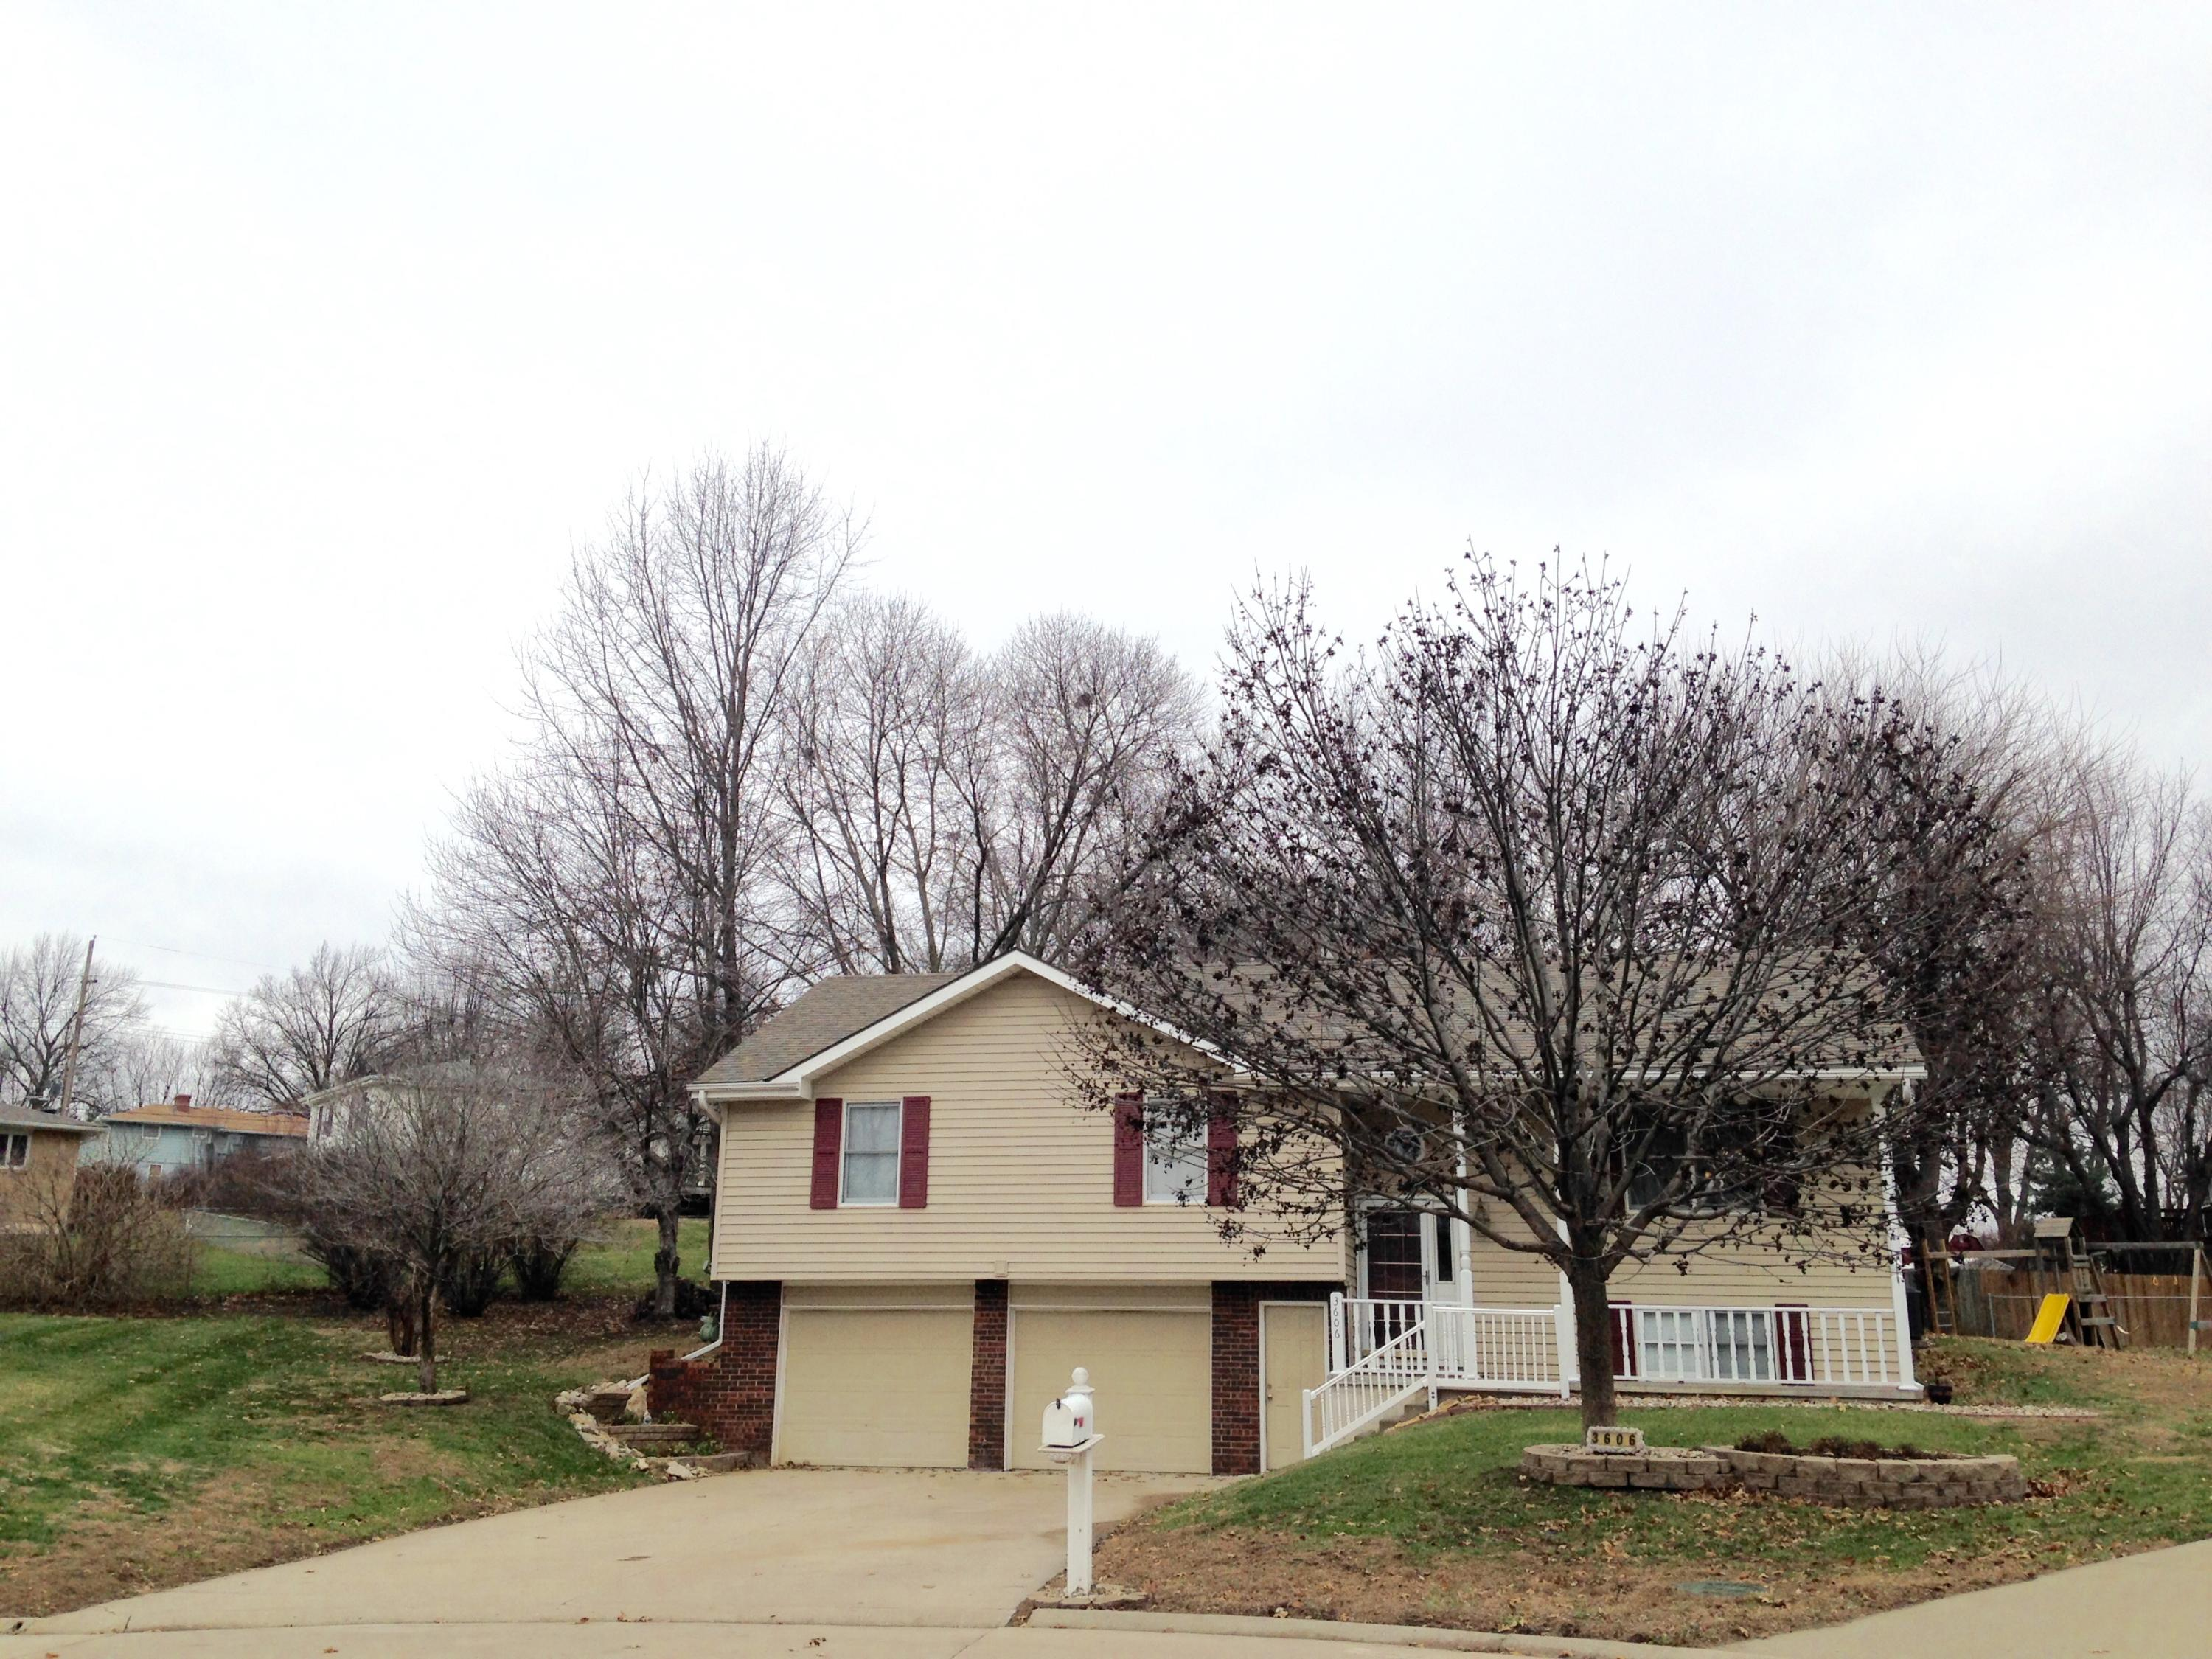 3606 N 36th St Ct, St. Joseph, Missouri 64506